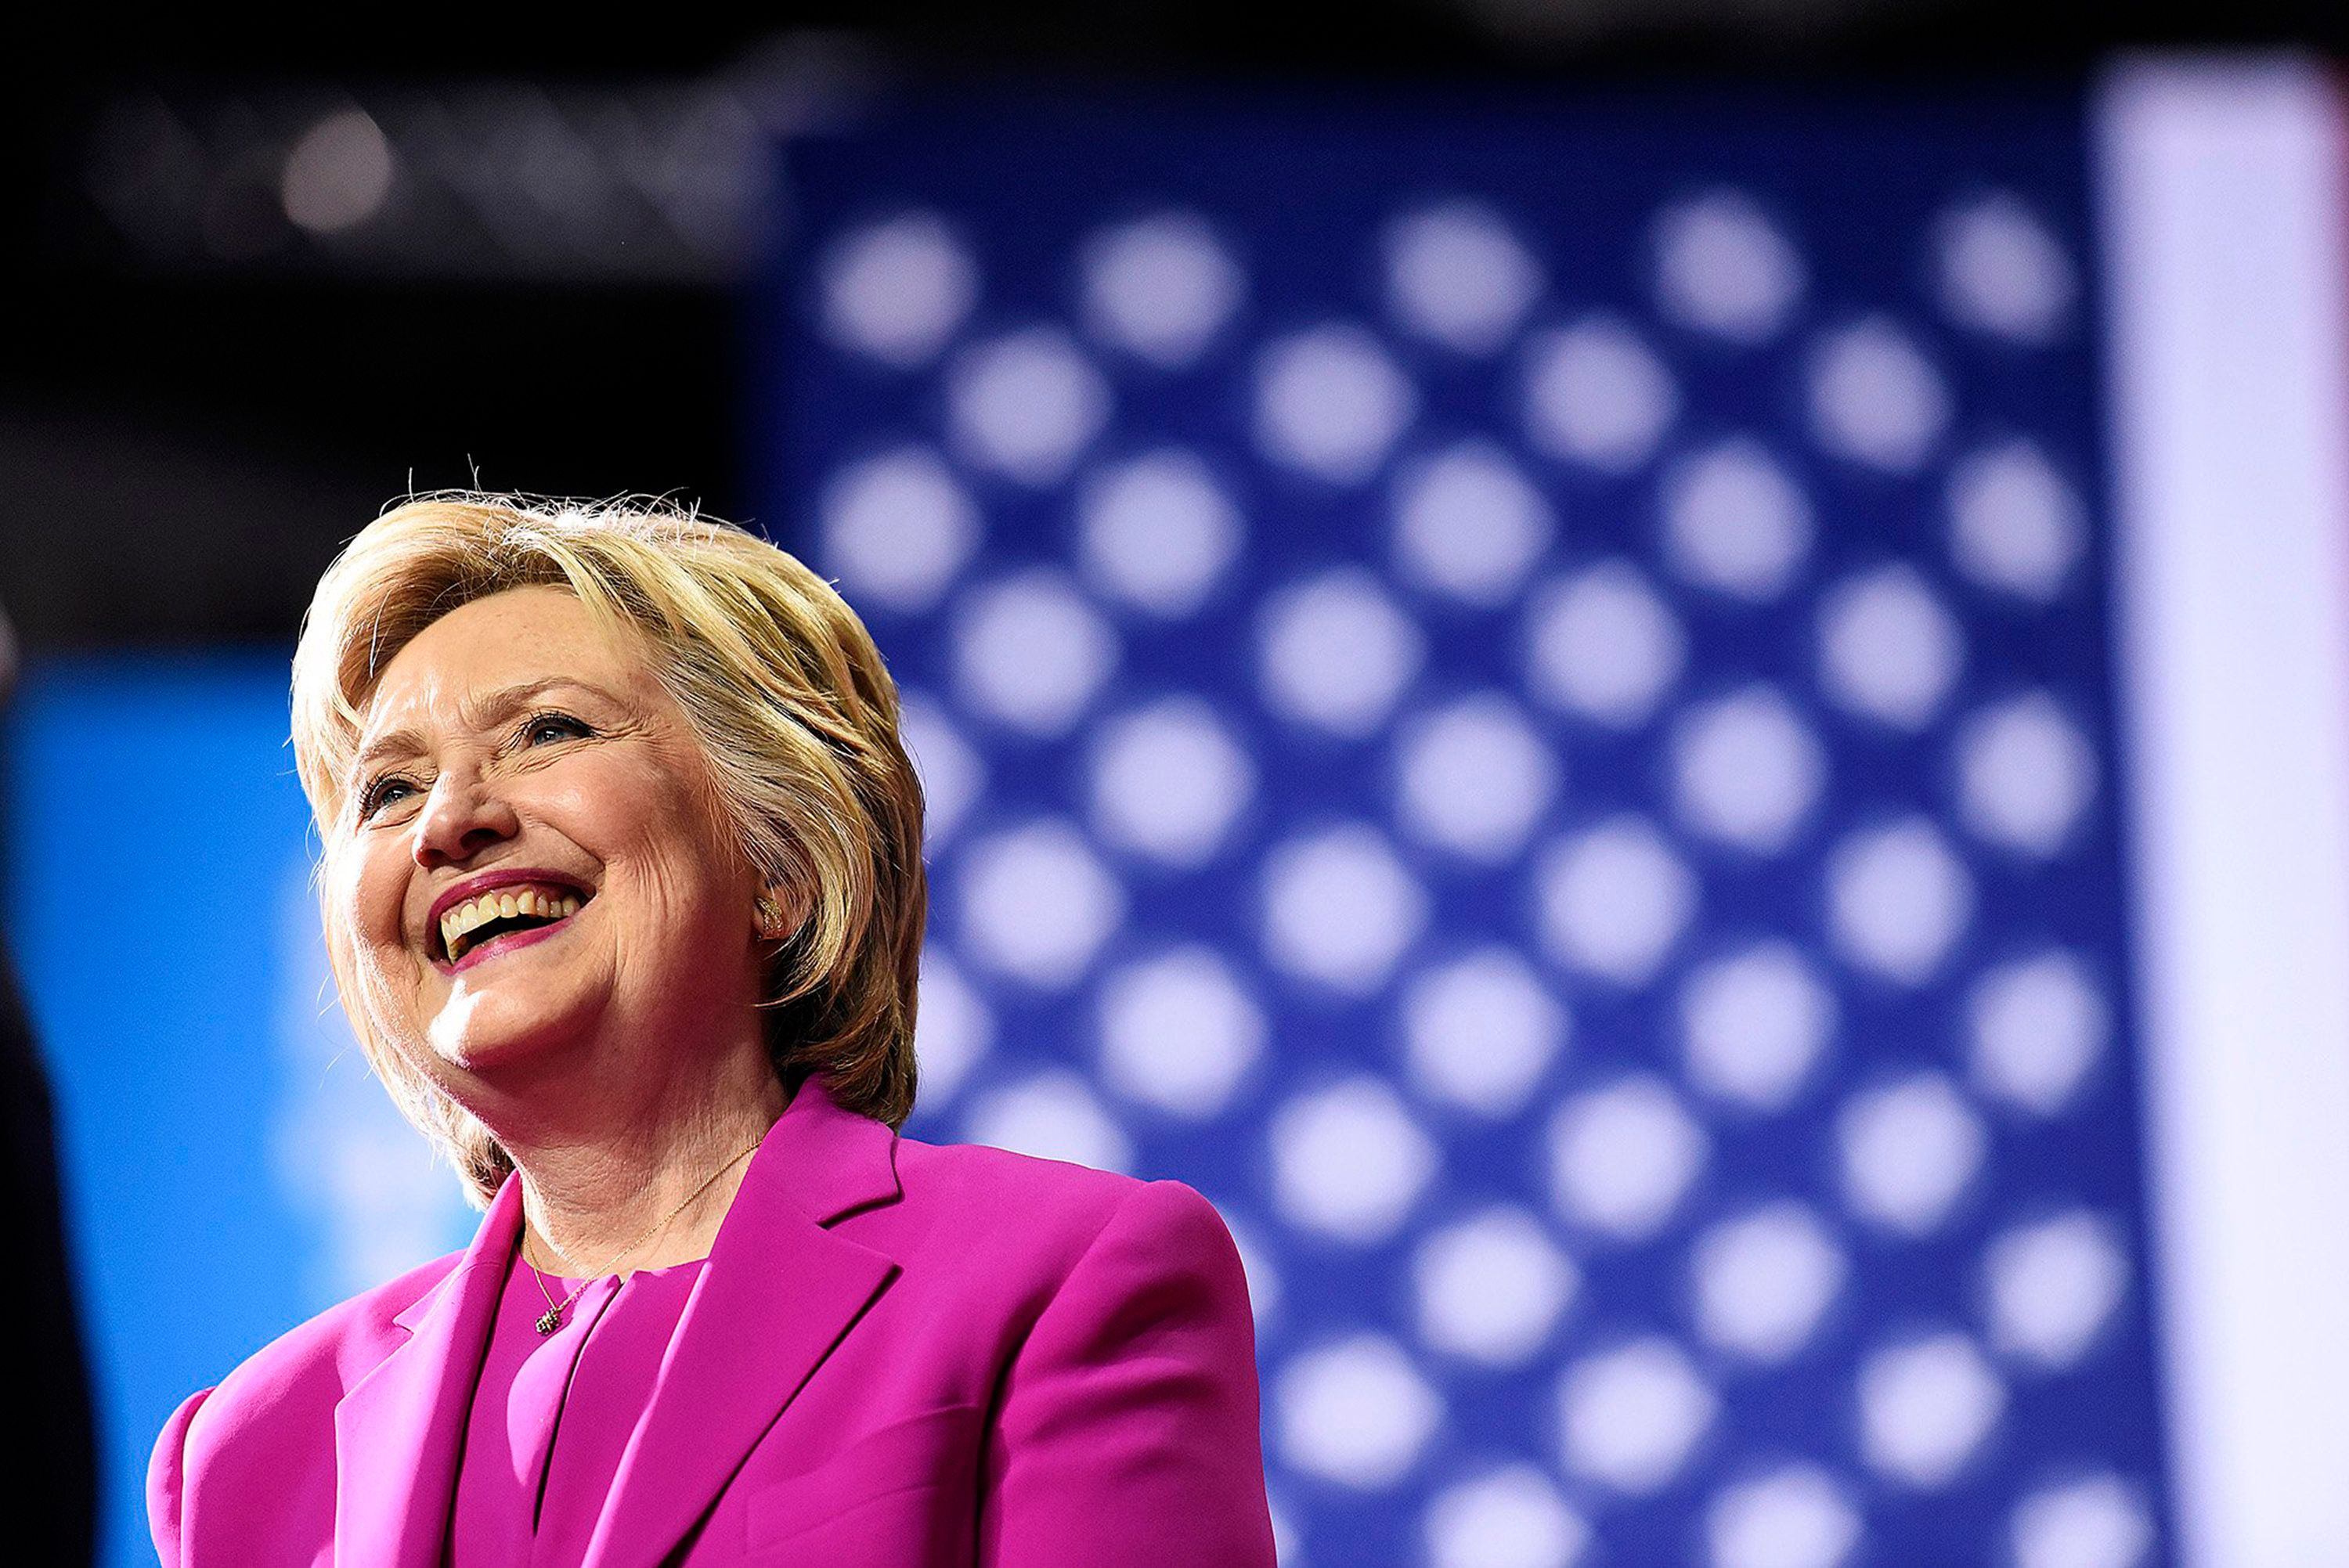 Hillary Clinton's campaign, along with the Democratic National Committee, will run a counter-convention in Cleveland during t